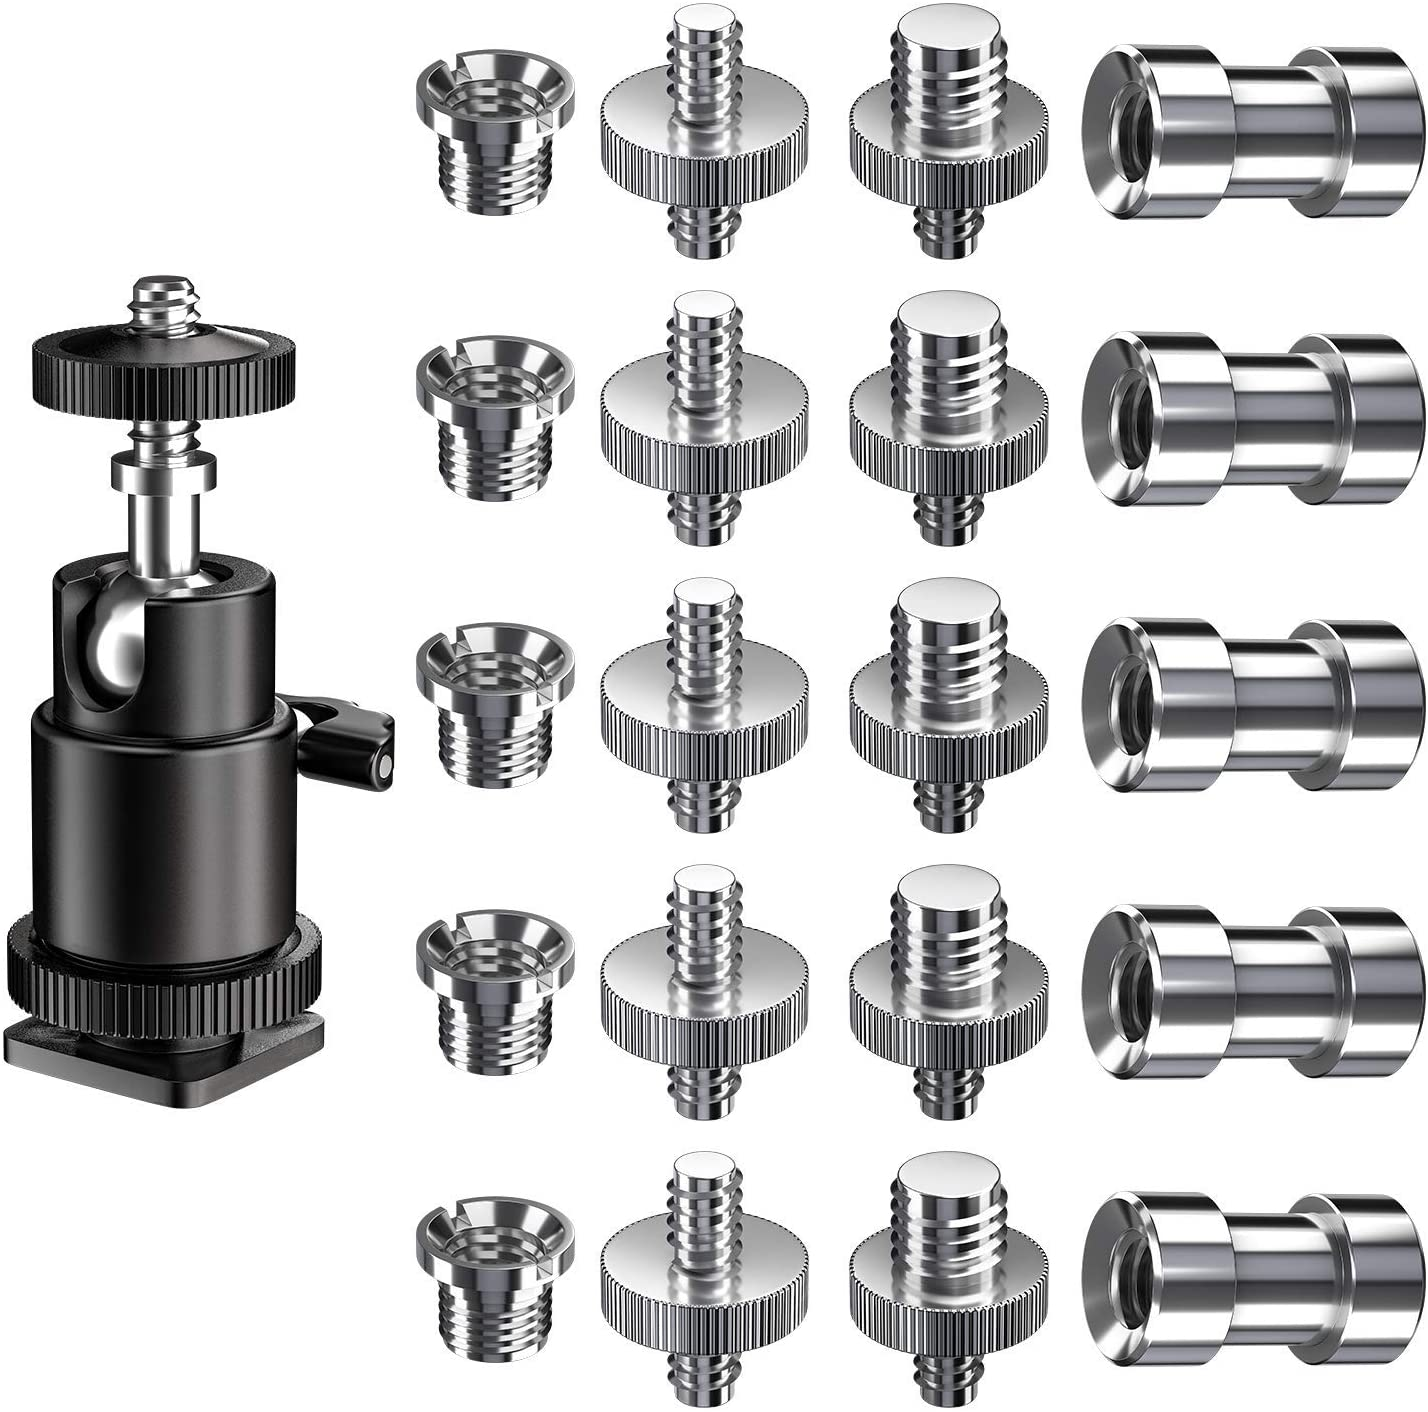 """1//4/"""" to 3//8/"""" Thread Screw Adapter Kit for Tripod Monopod Flash Light 3 in 1"""